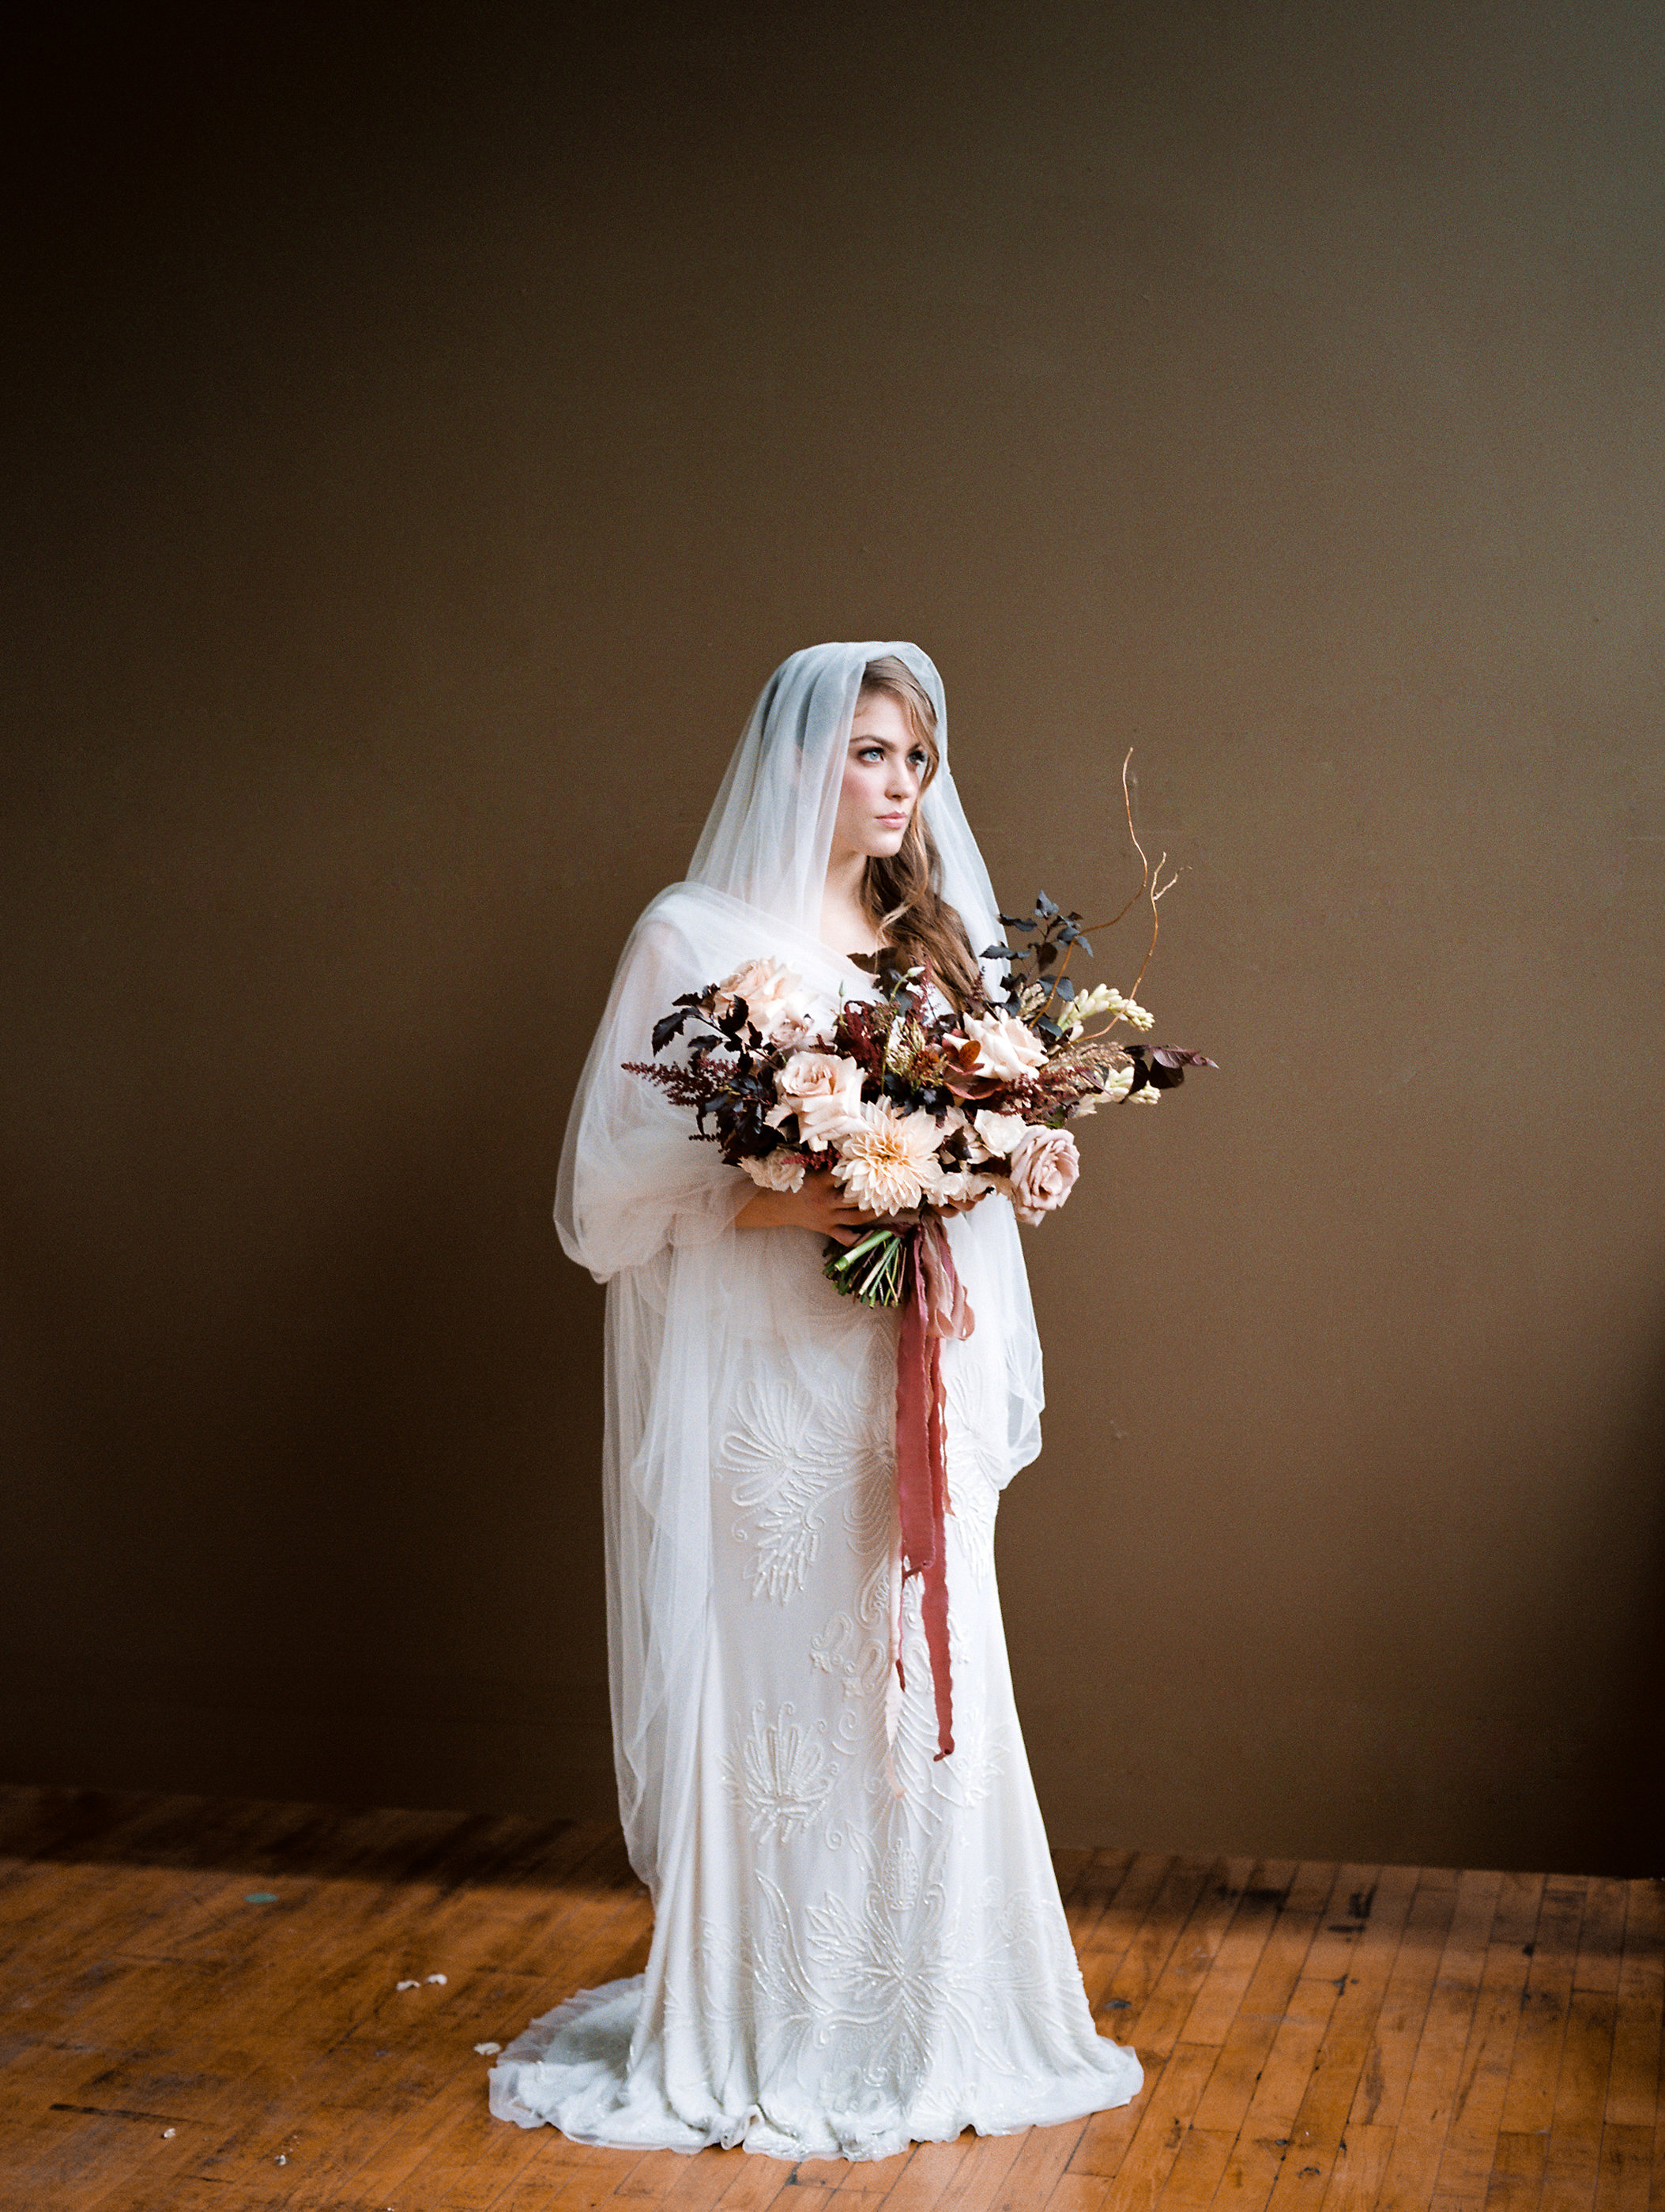 WHEN-SHE-KNEW-PHOTOGRAPHY-STYLED-WEDDING-EDITORIAL-OREGON-13.jpg